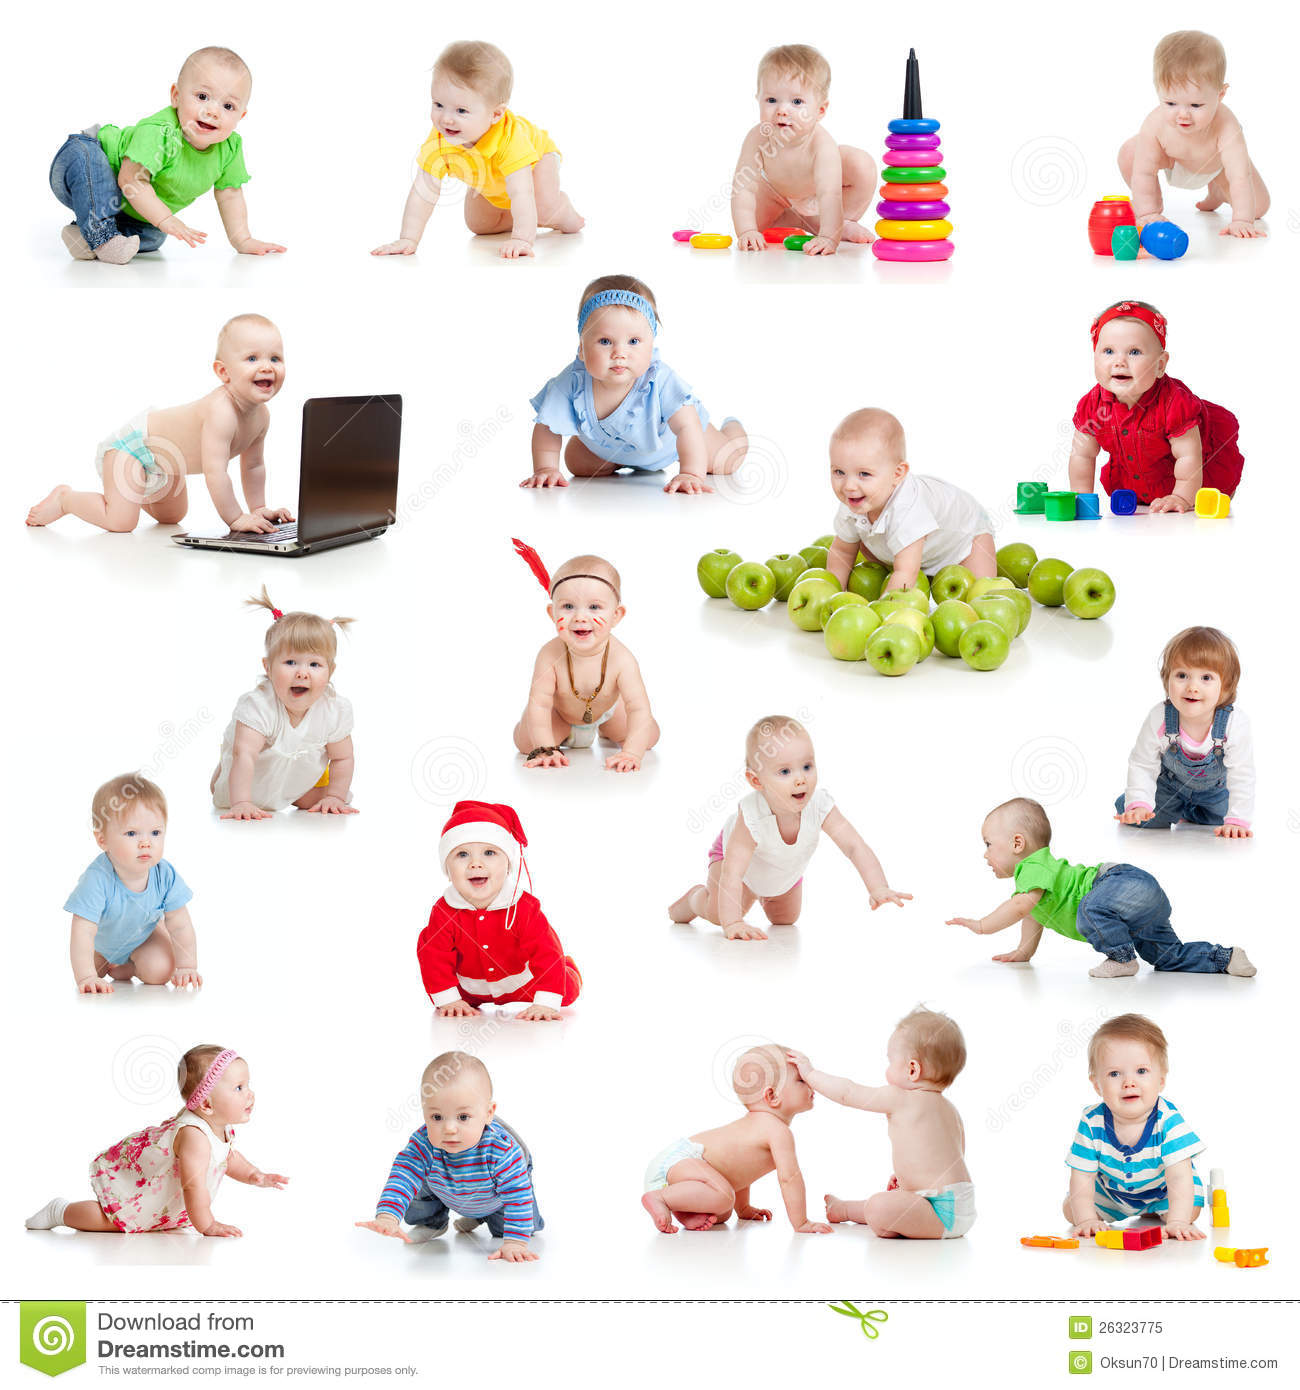 Set of crawling babies or toddlers with toys